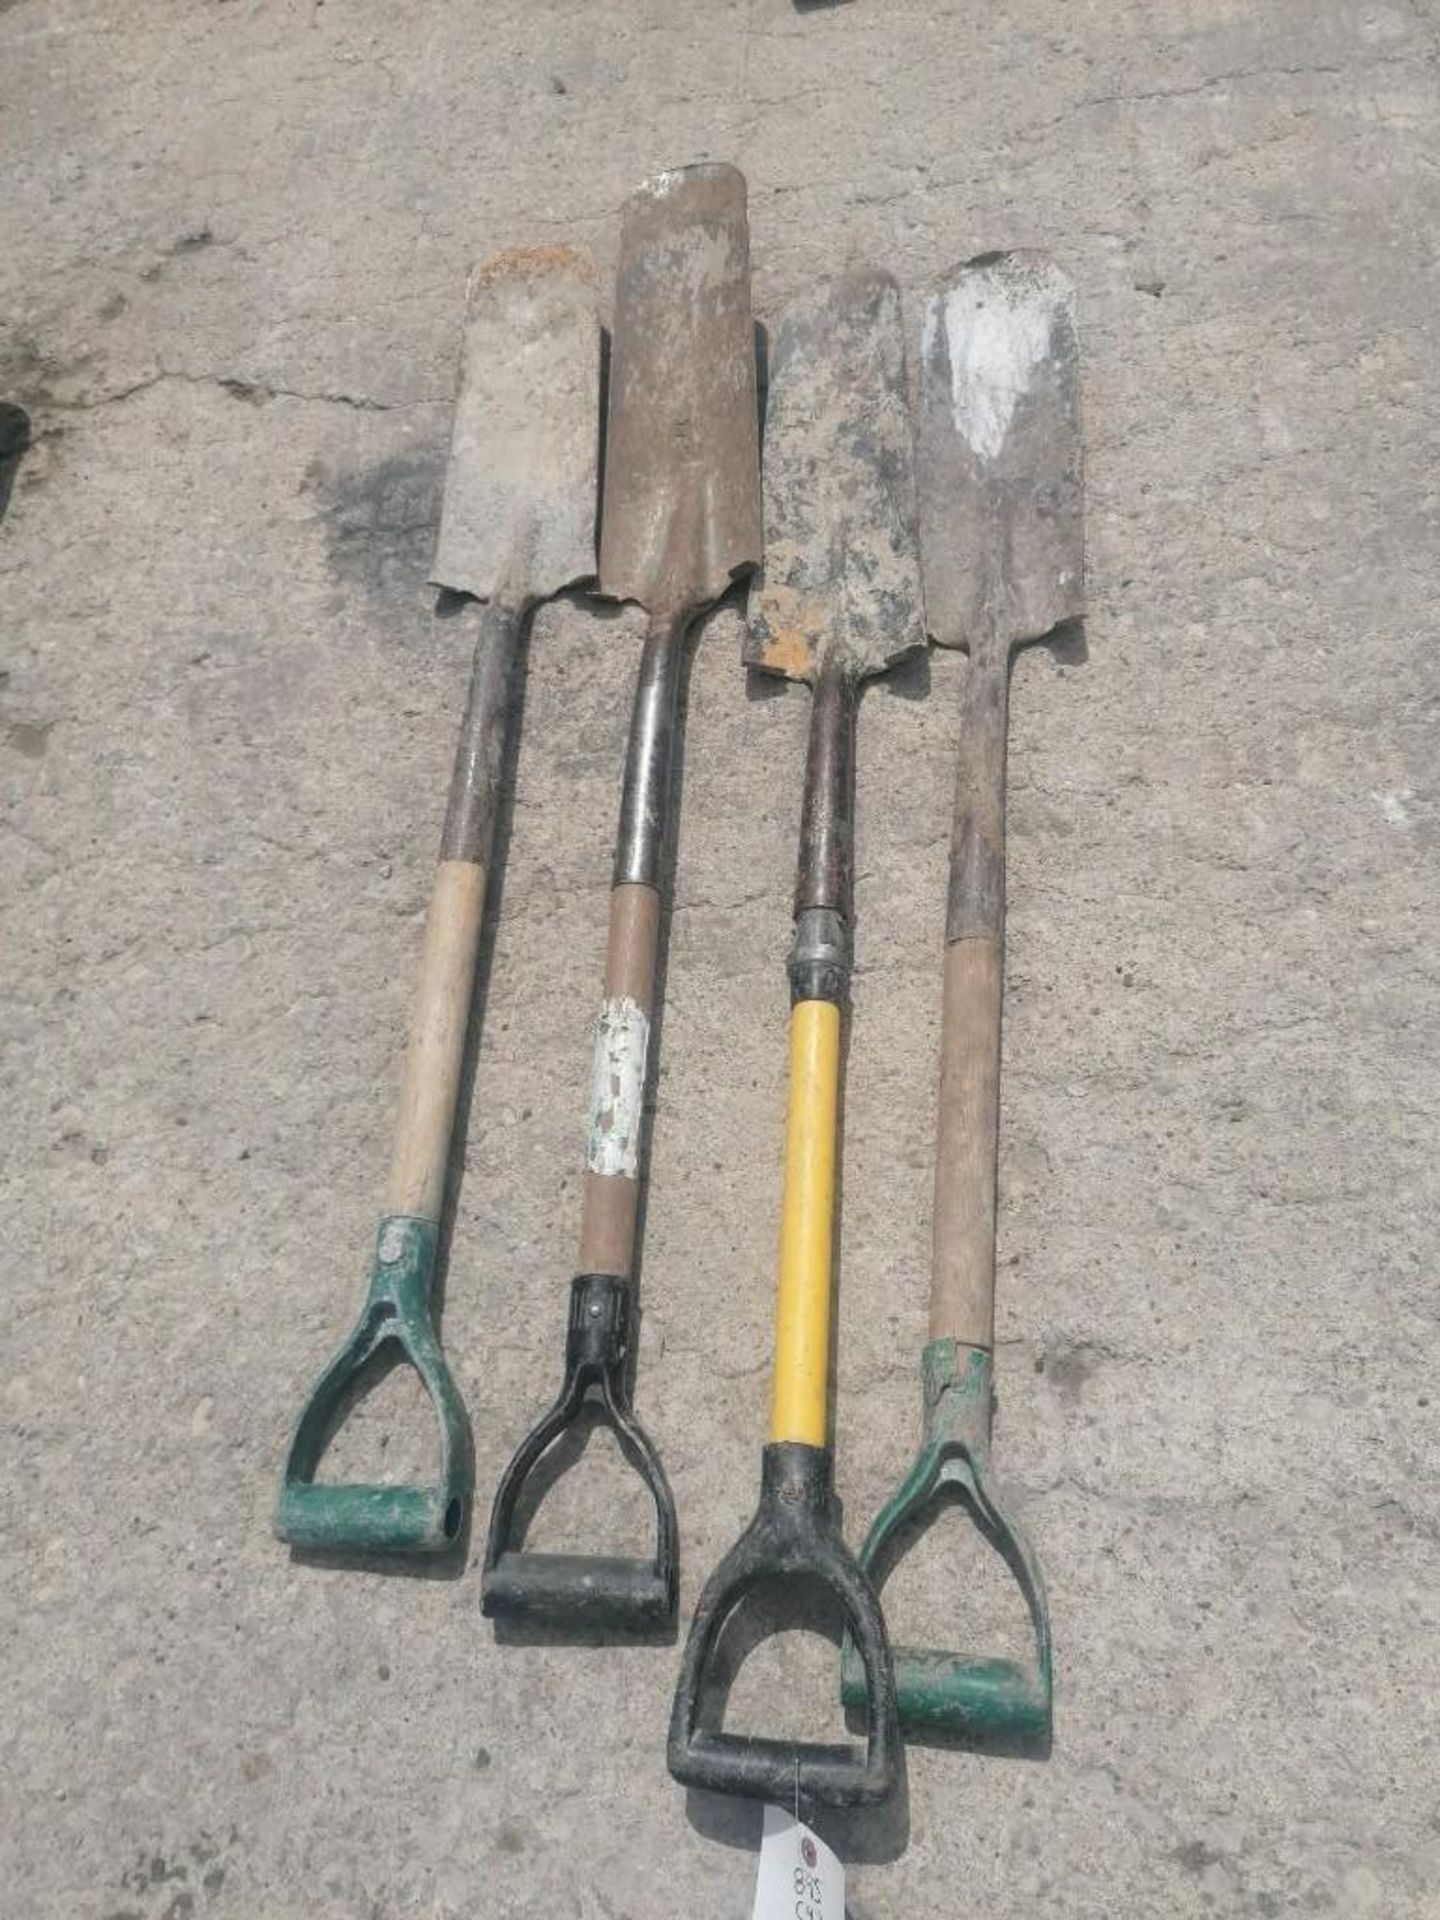 Lot 56 - (4) Shovels. Located at 301 E Henry Street, Mt. Pleasant, IA 52641.